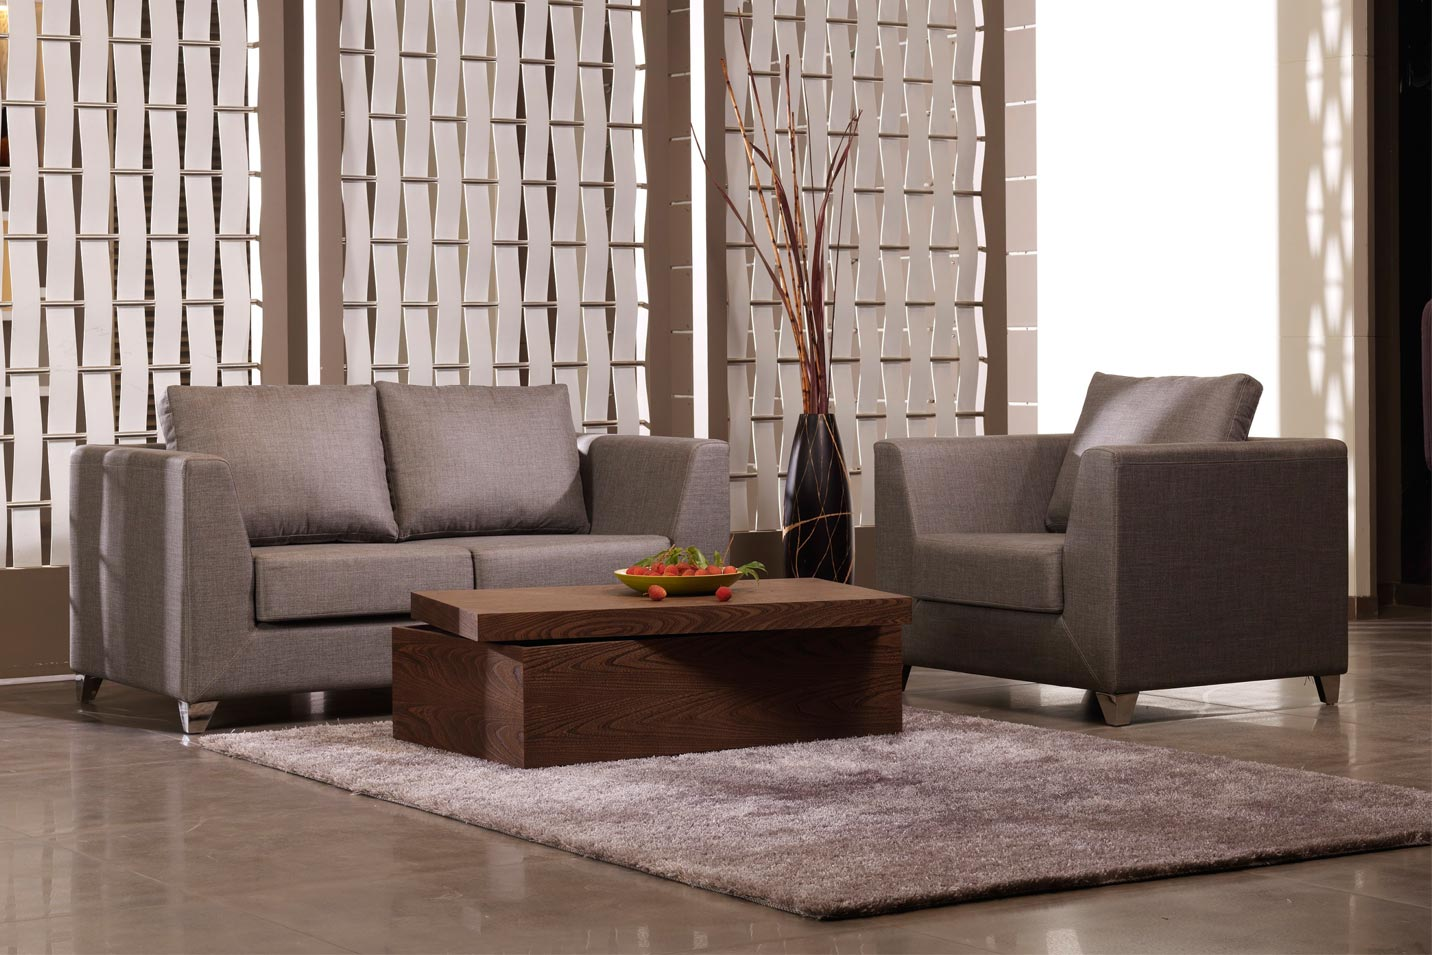 Magnificent The Common Mans Guide To Sofas Hof India Machost Co Dining Chair Design Ideas Machostcouk